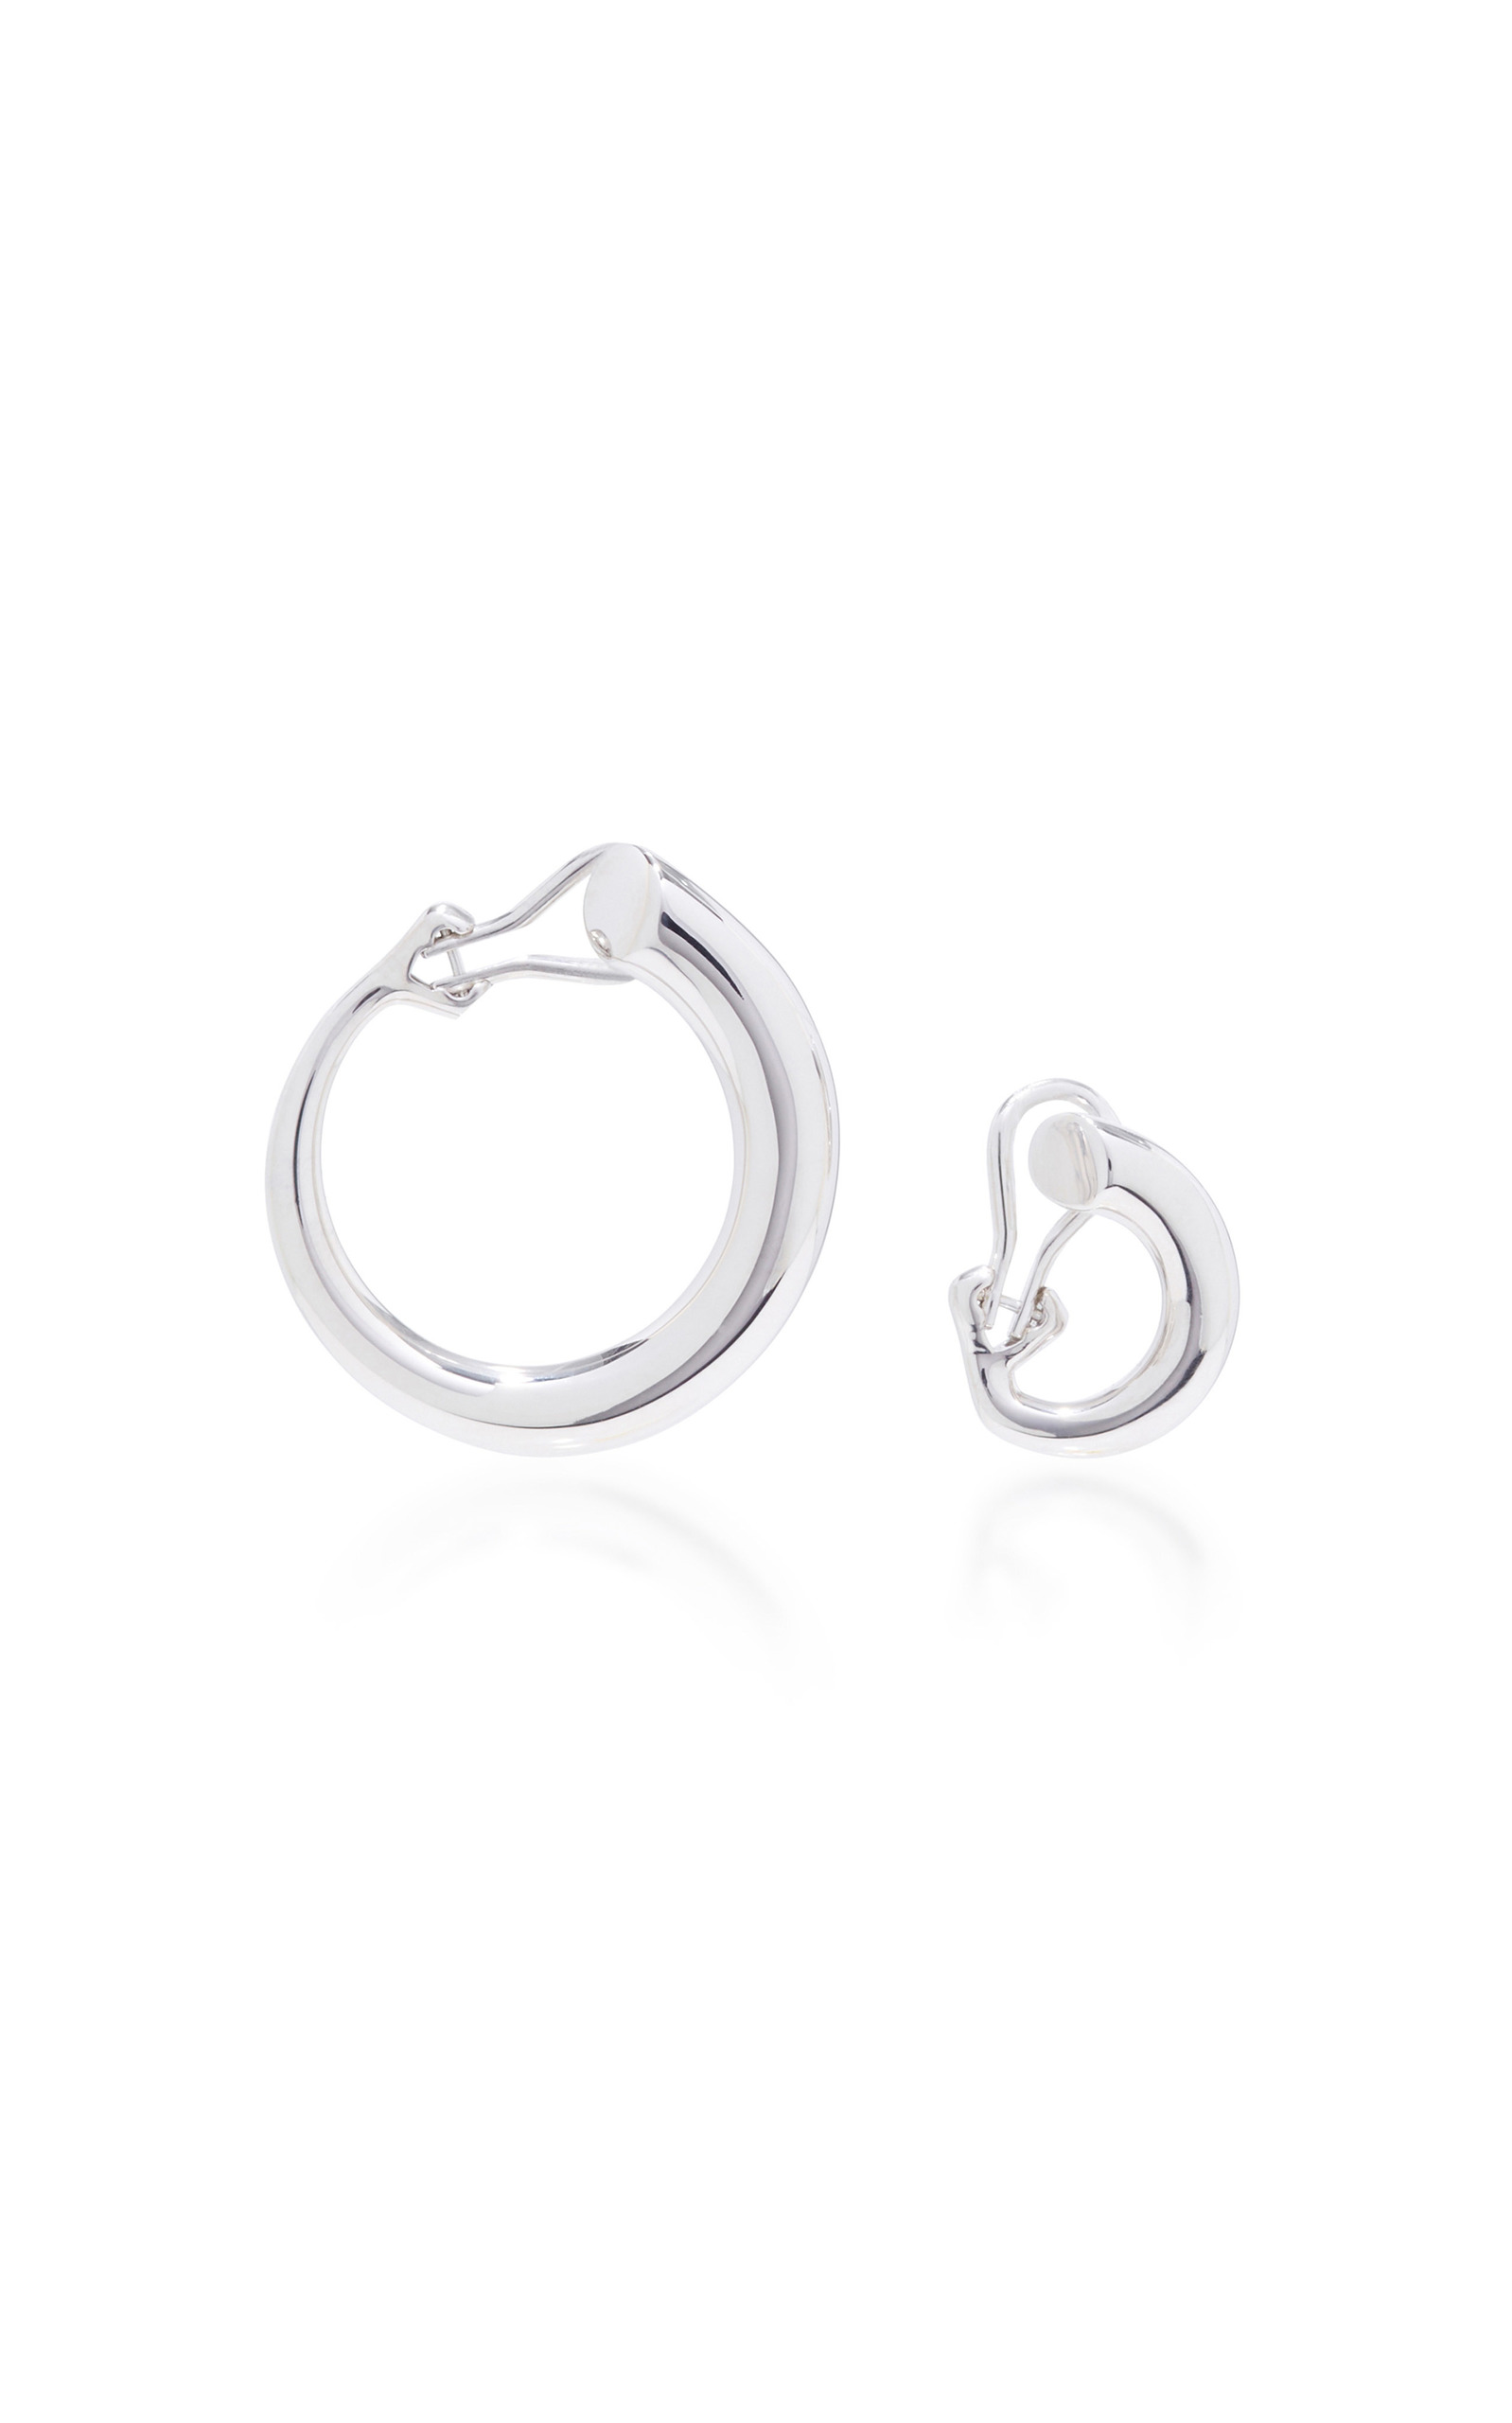 ea50a8cb3 Charlotte ChesnaisMonie Small and Large Silver Clip Earrings. CLOSE. Loading